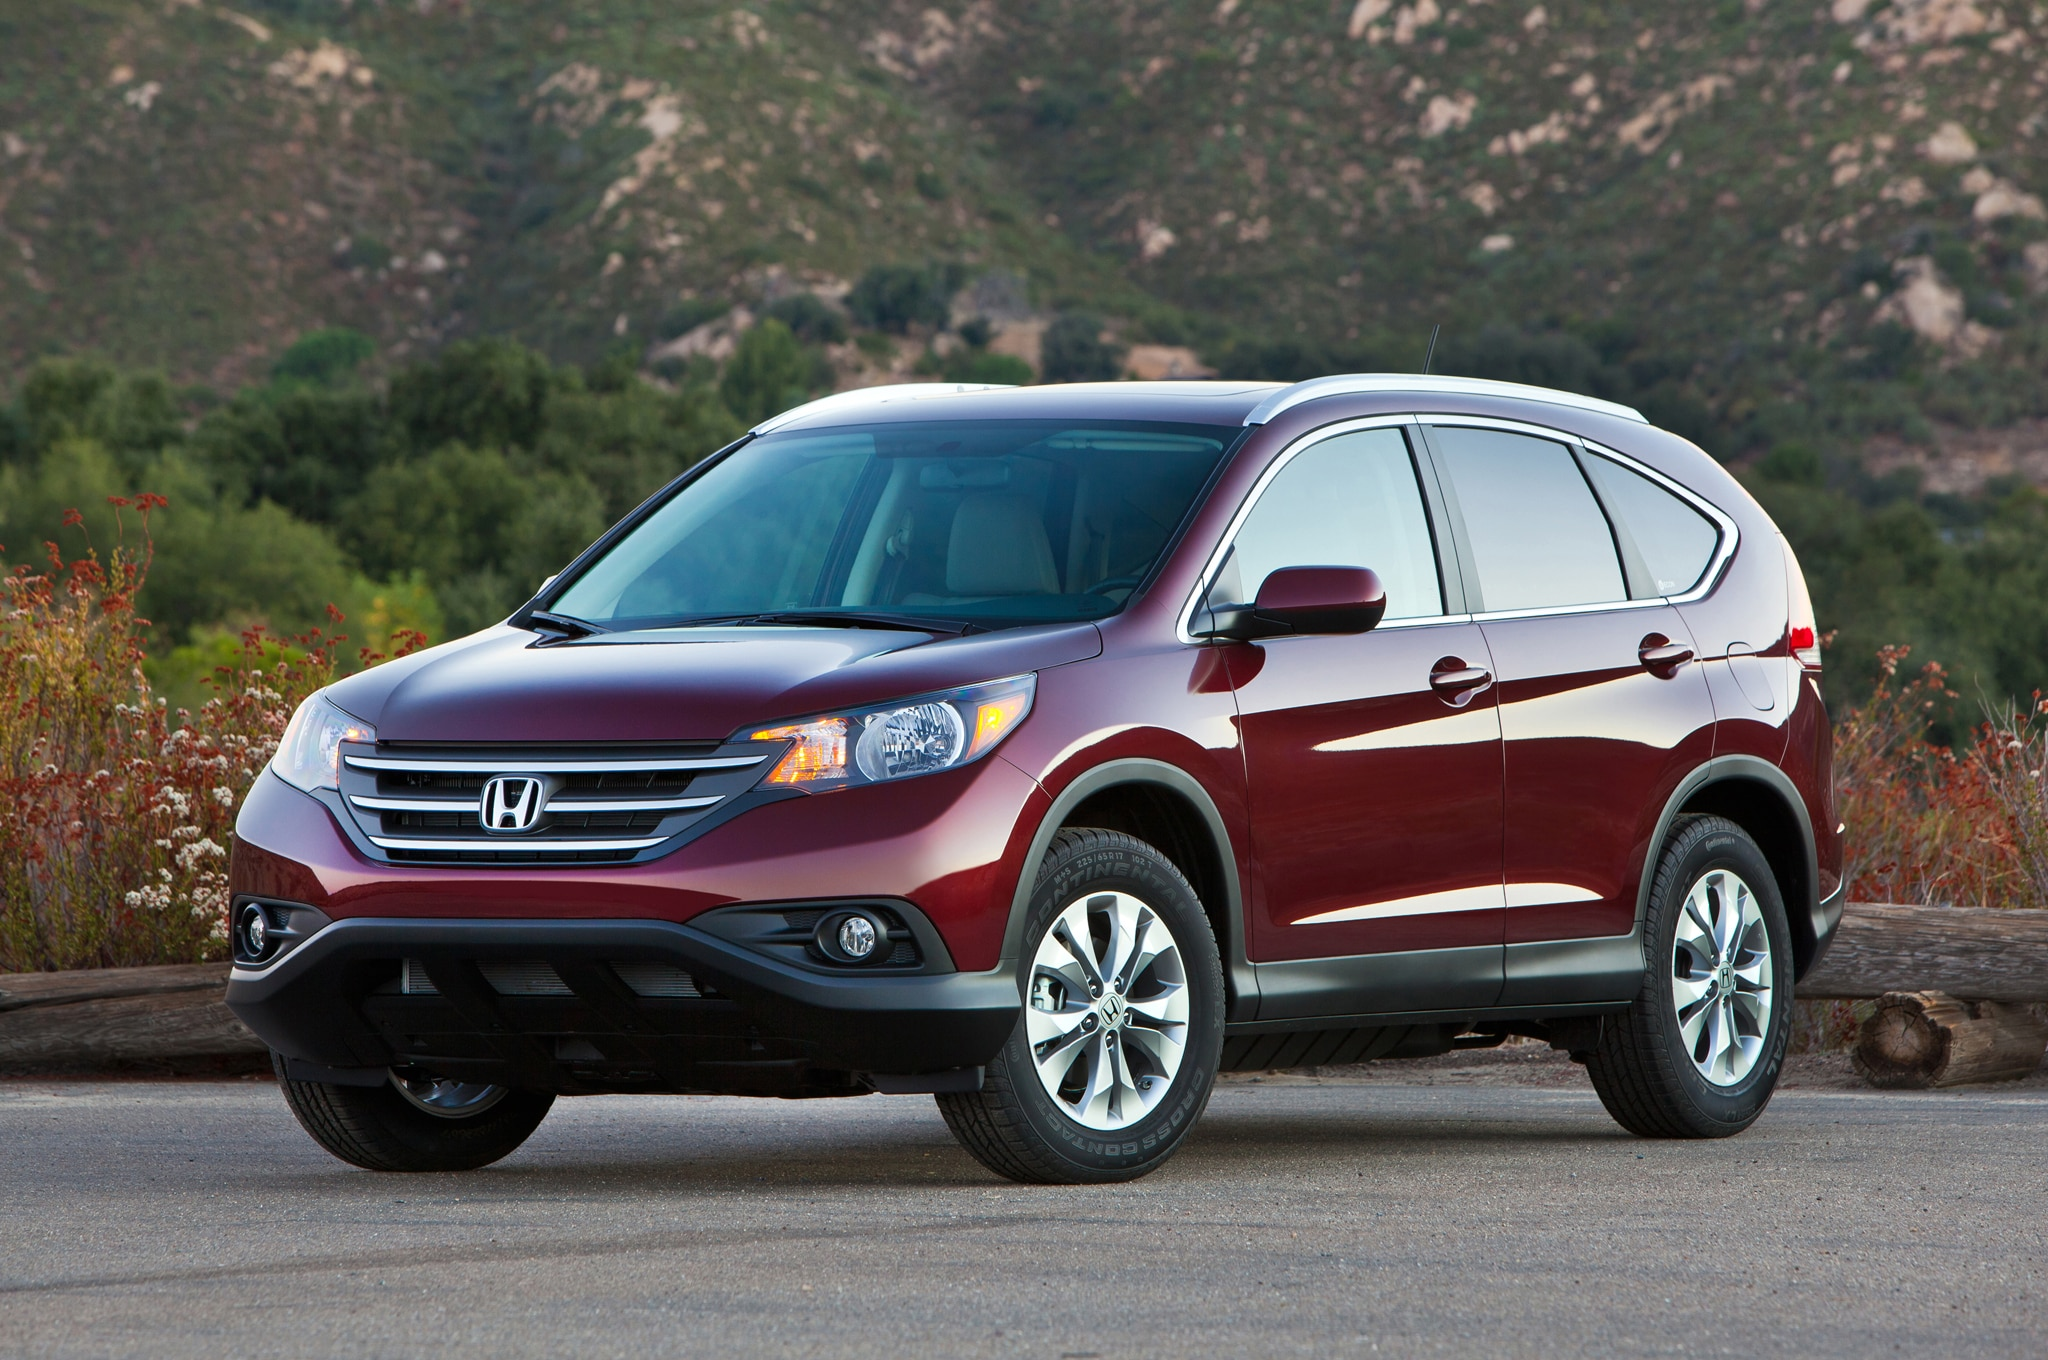 August 2013 SUV Sales: Honda CR-V Trounces Ford Escape